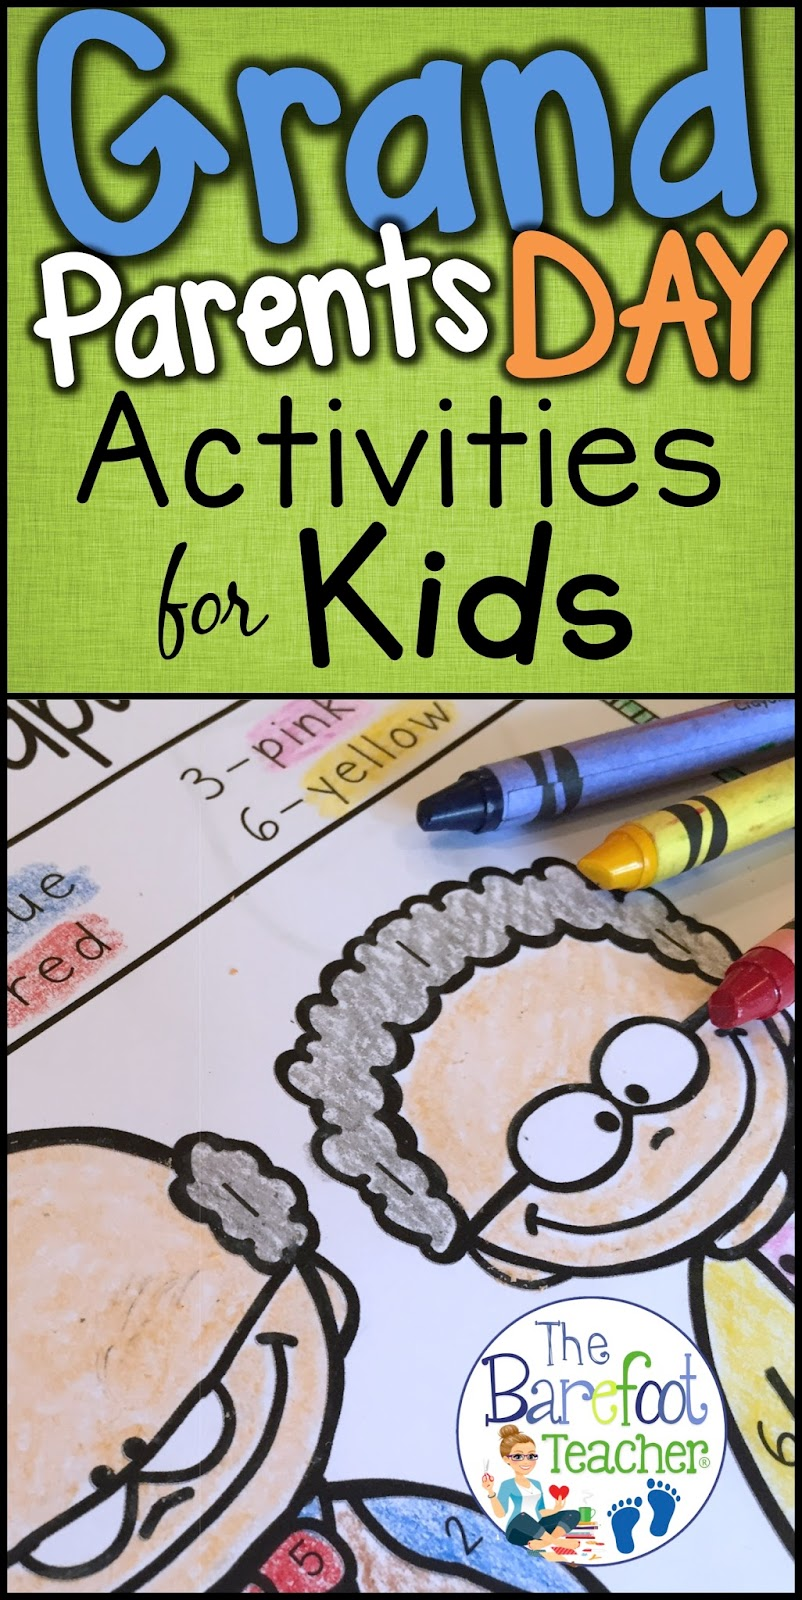 The Barefoot Teacher: Grandparents Day Activities